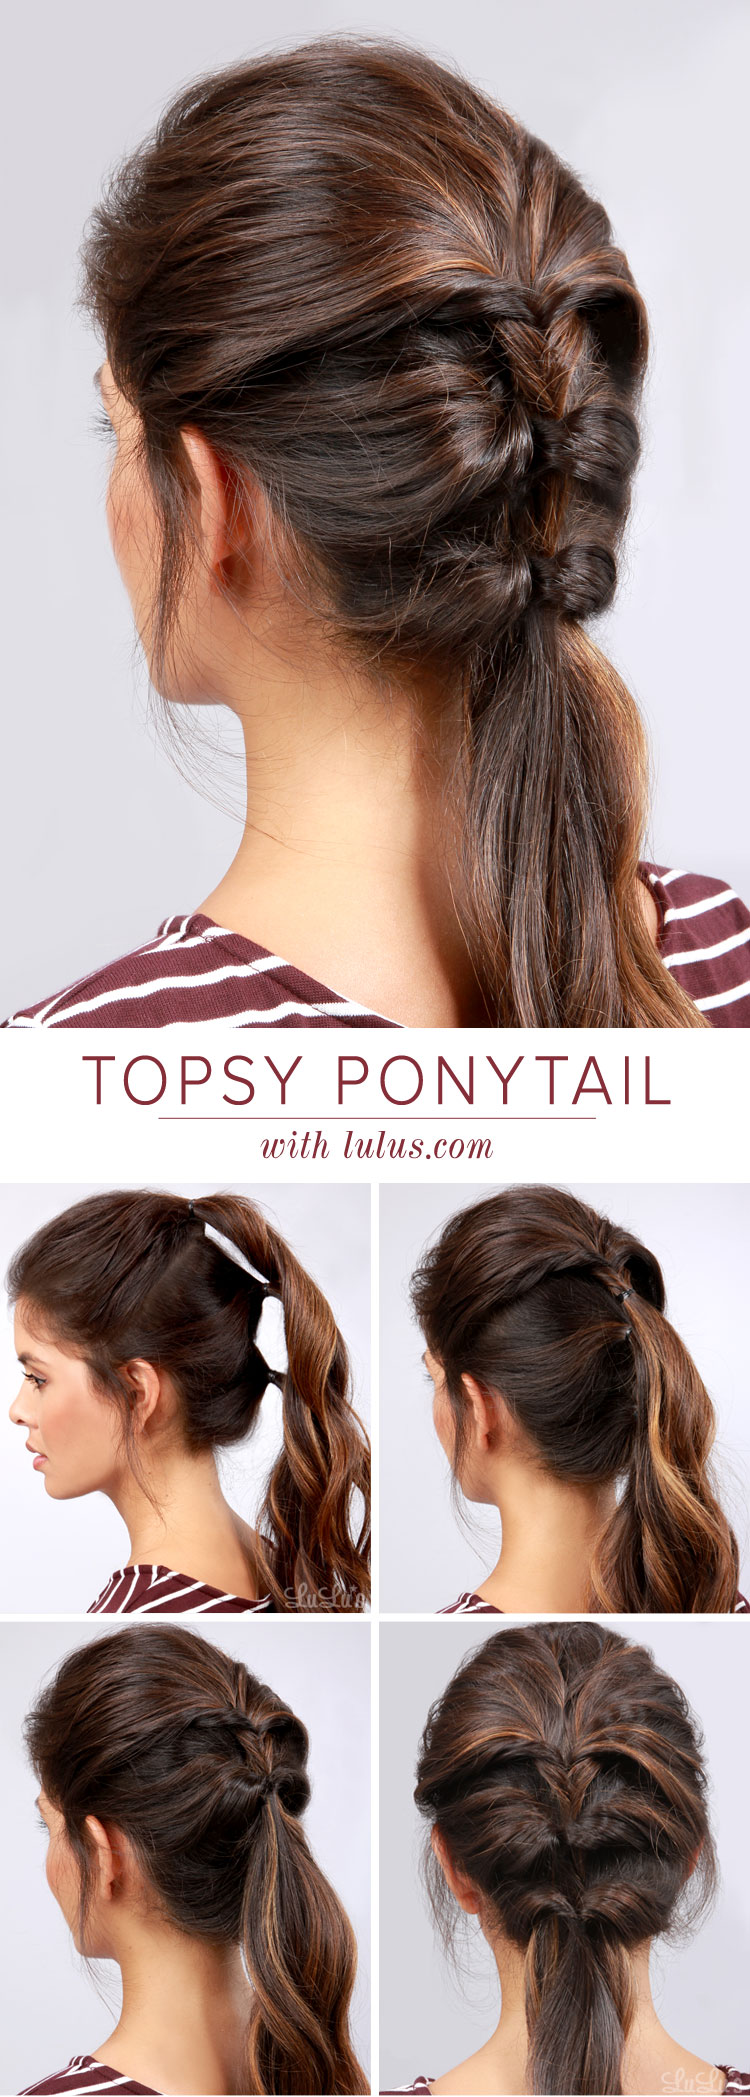 Lulus How To Topsy Ponytail Hair Tutorial Lulus Fashion Blog